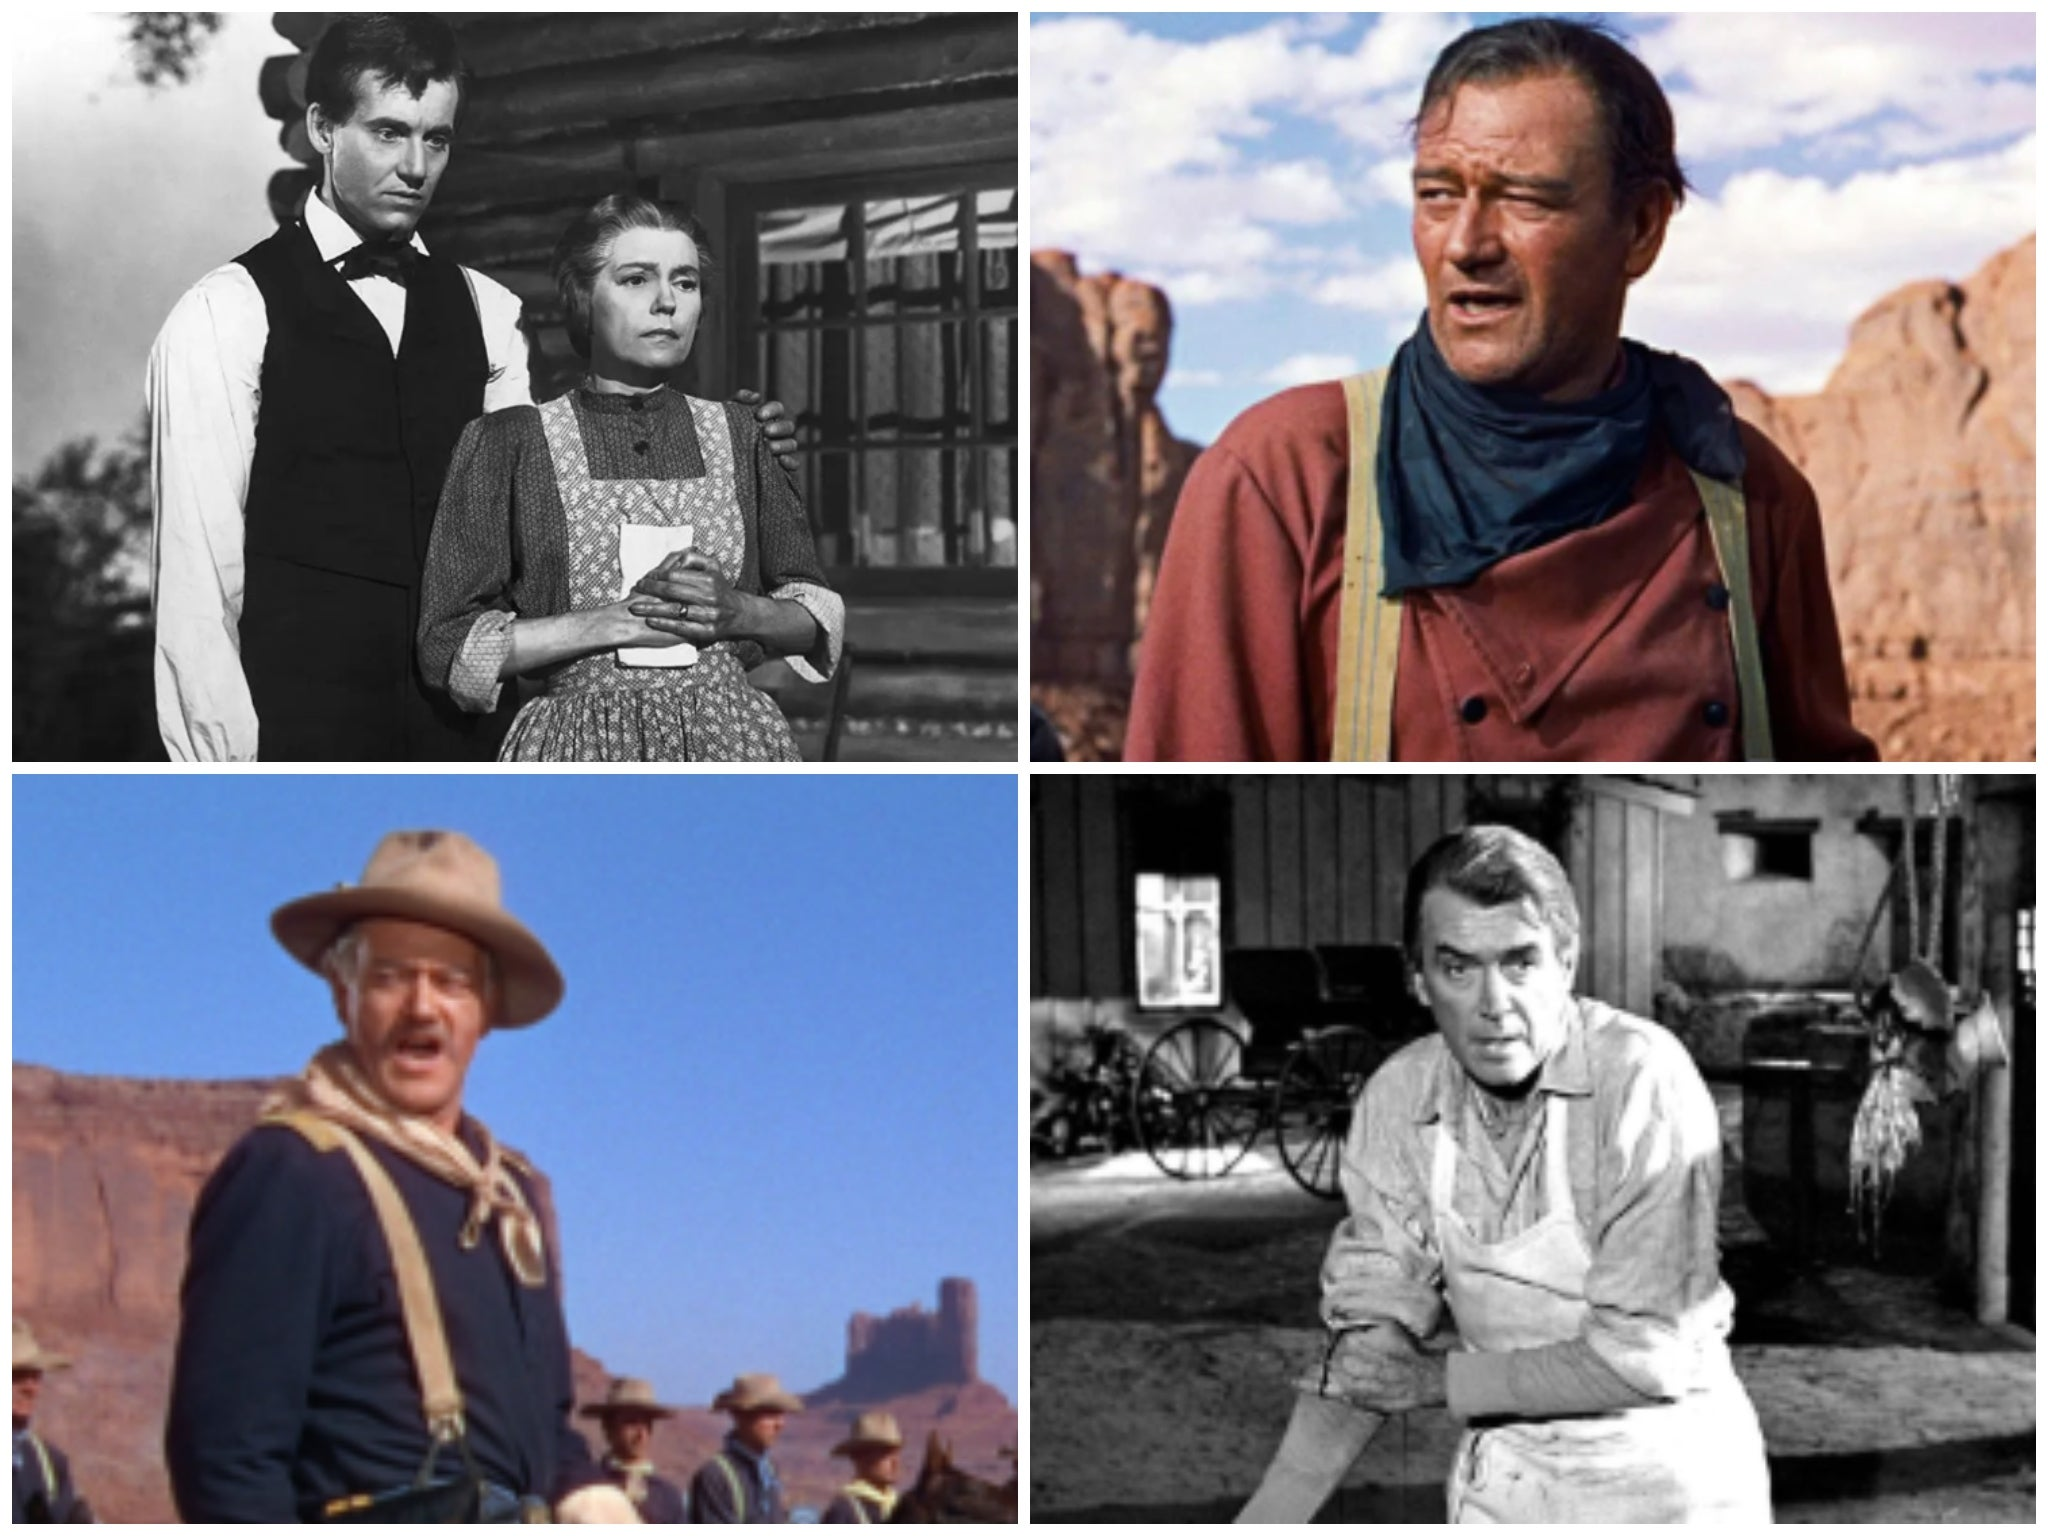 John Ford: His 10 greatest films, from Fort Apache to The Searchers